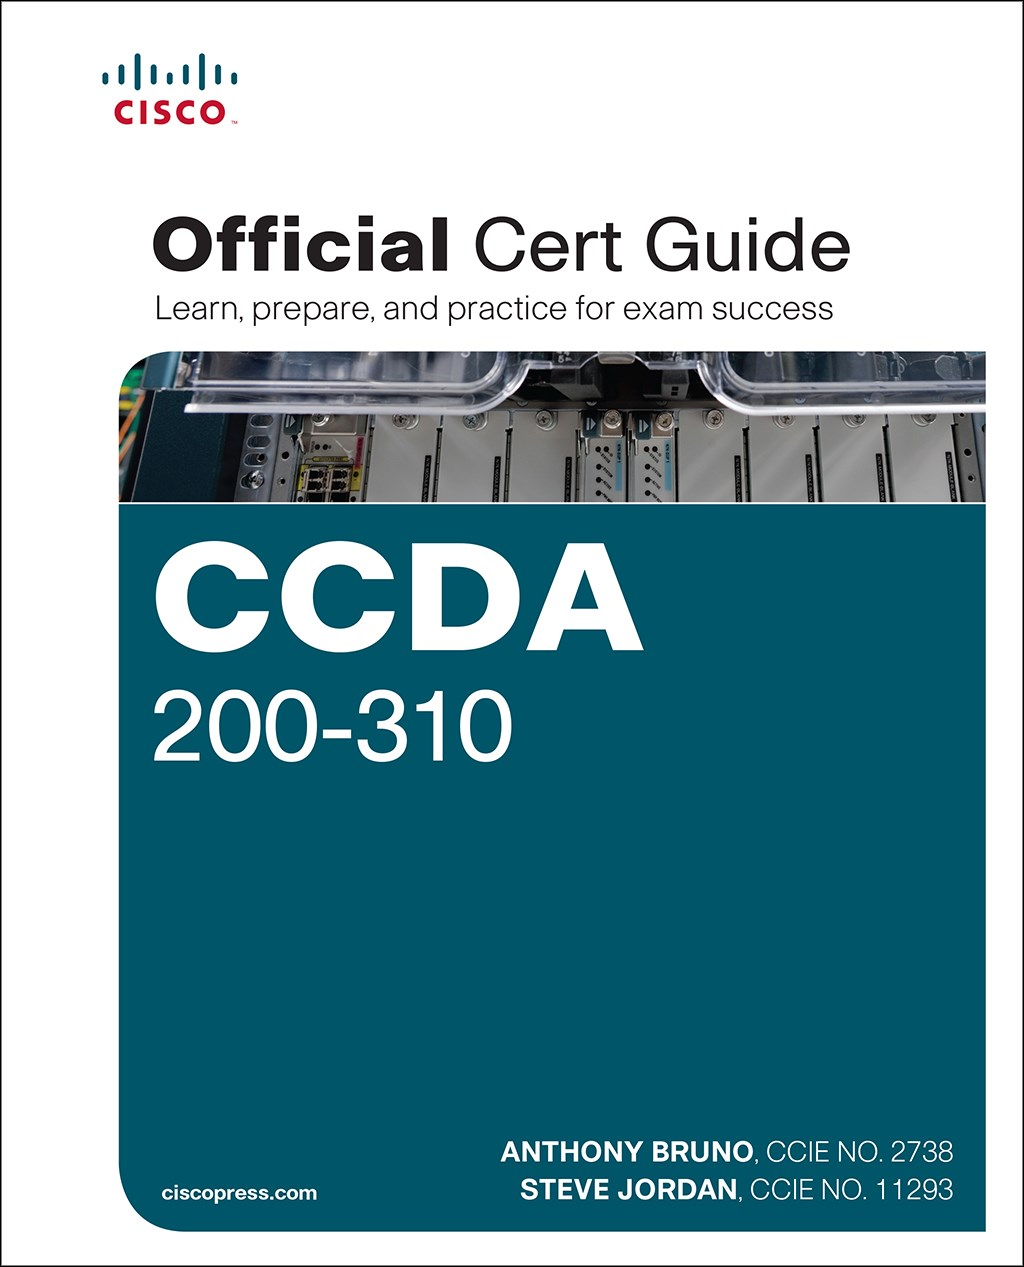 CCDA 200-310 Official Cert Guide, 5th Edition